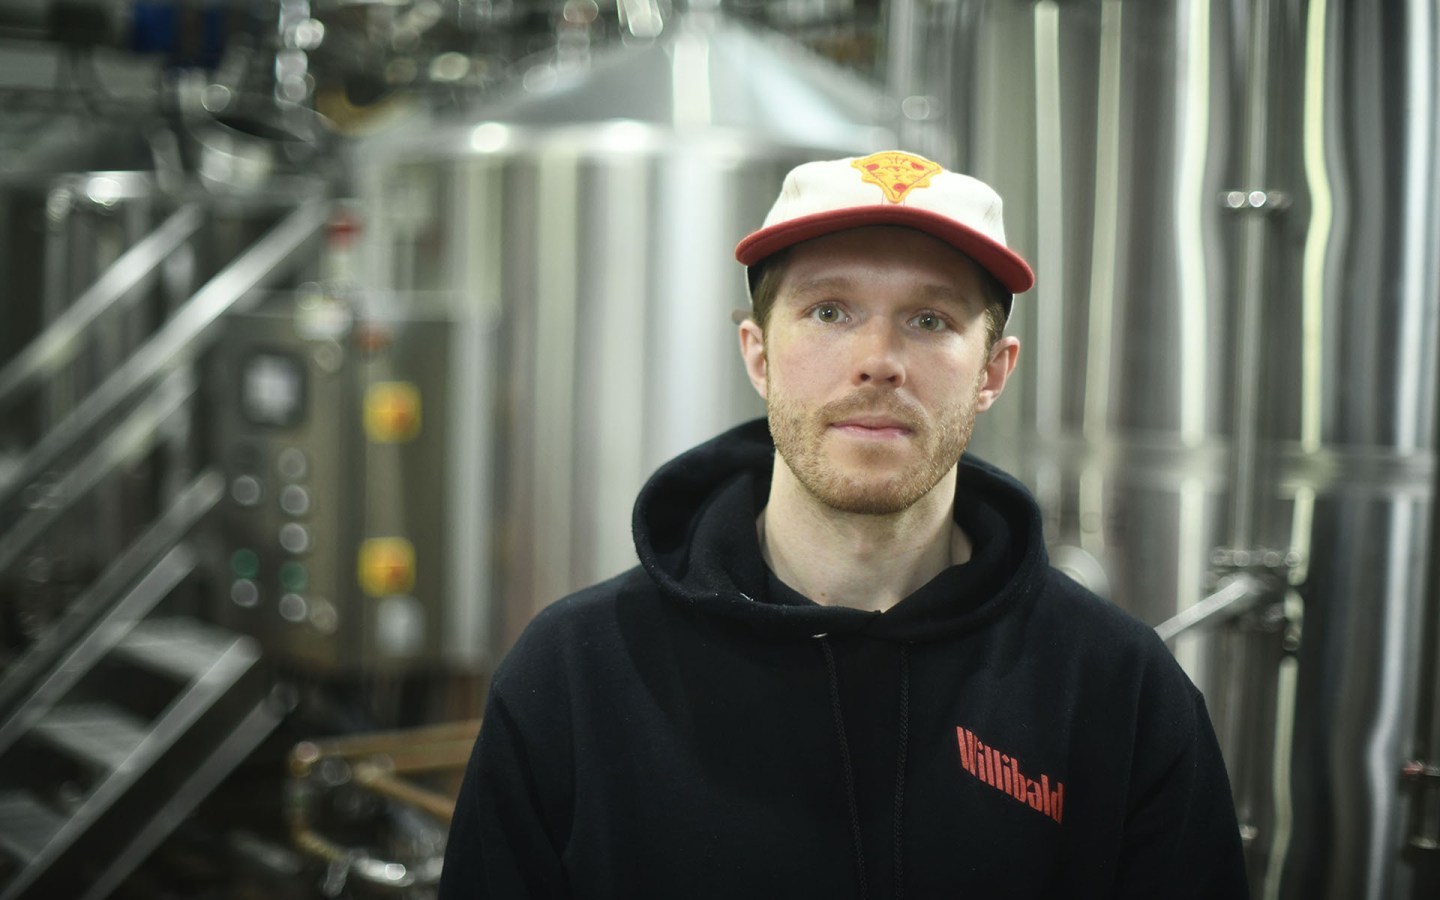 GETTING TO KNOW: WILLIBALD'S BREWER, JOE FREUND